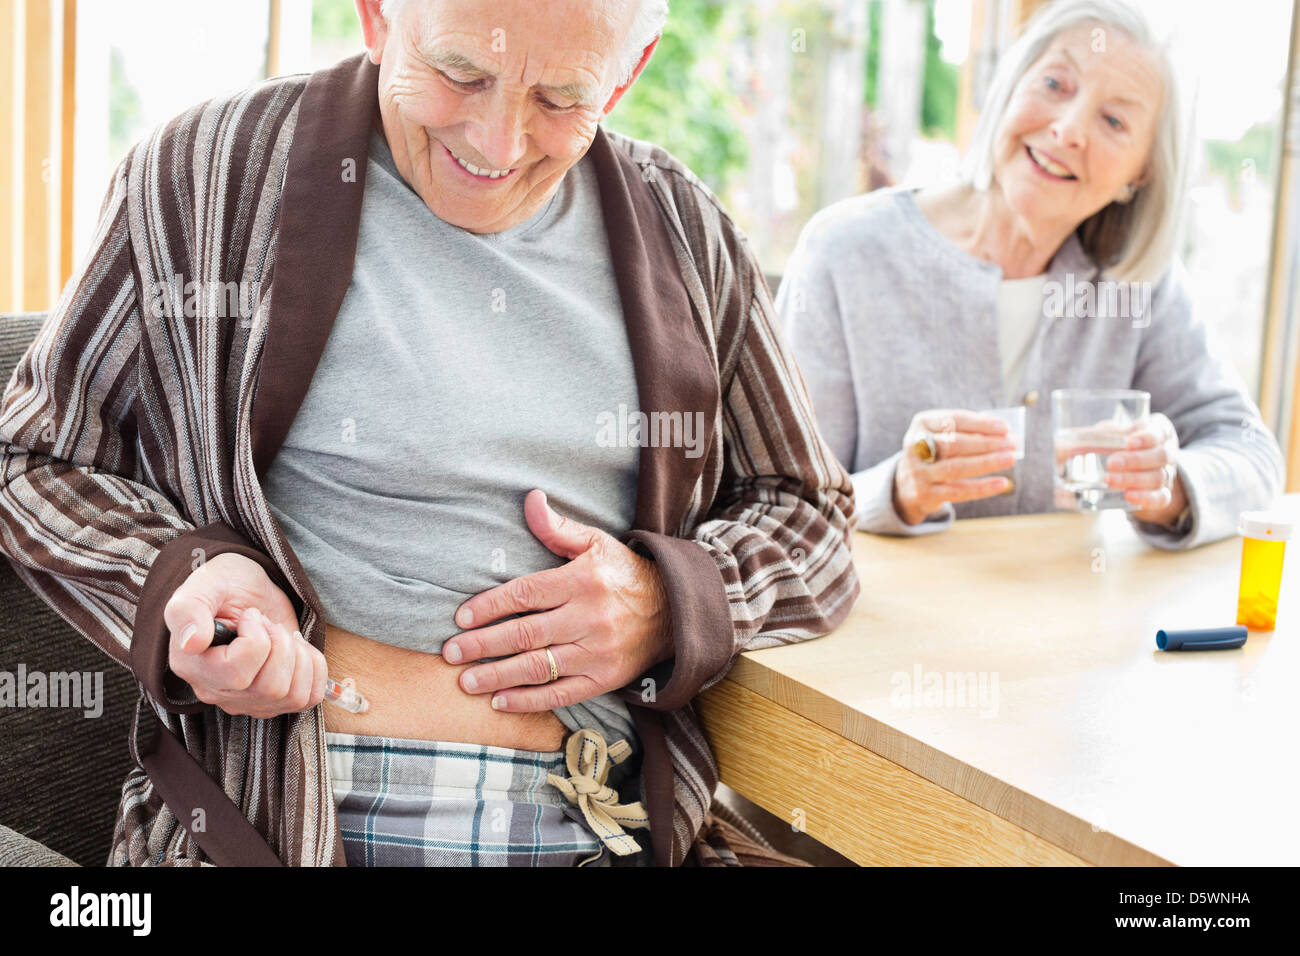 Older man giving himself injection - Stock Image